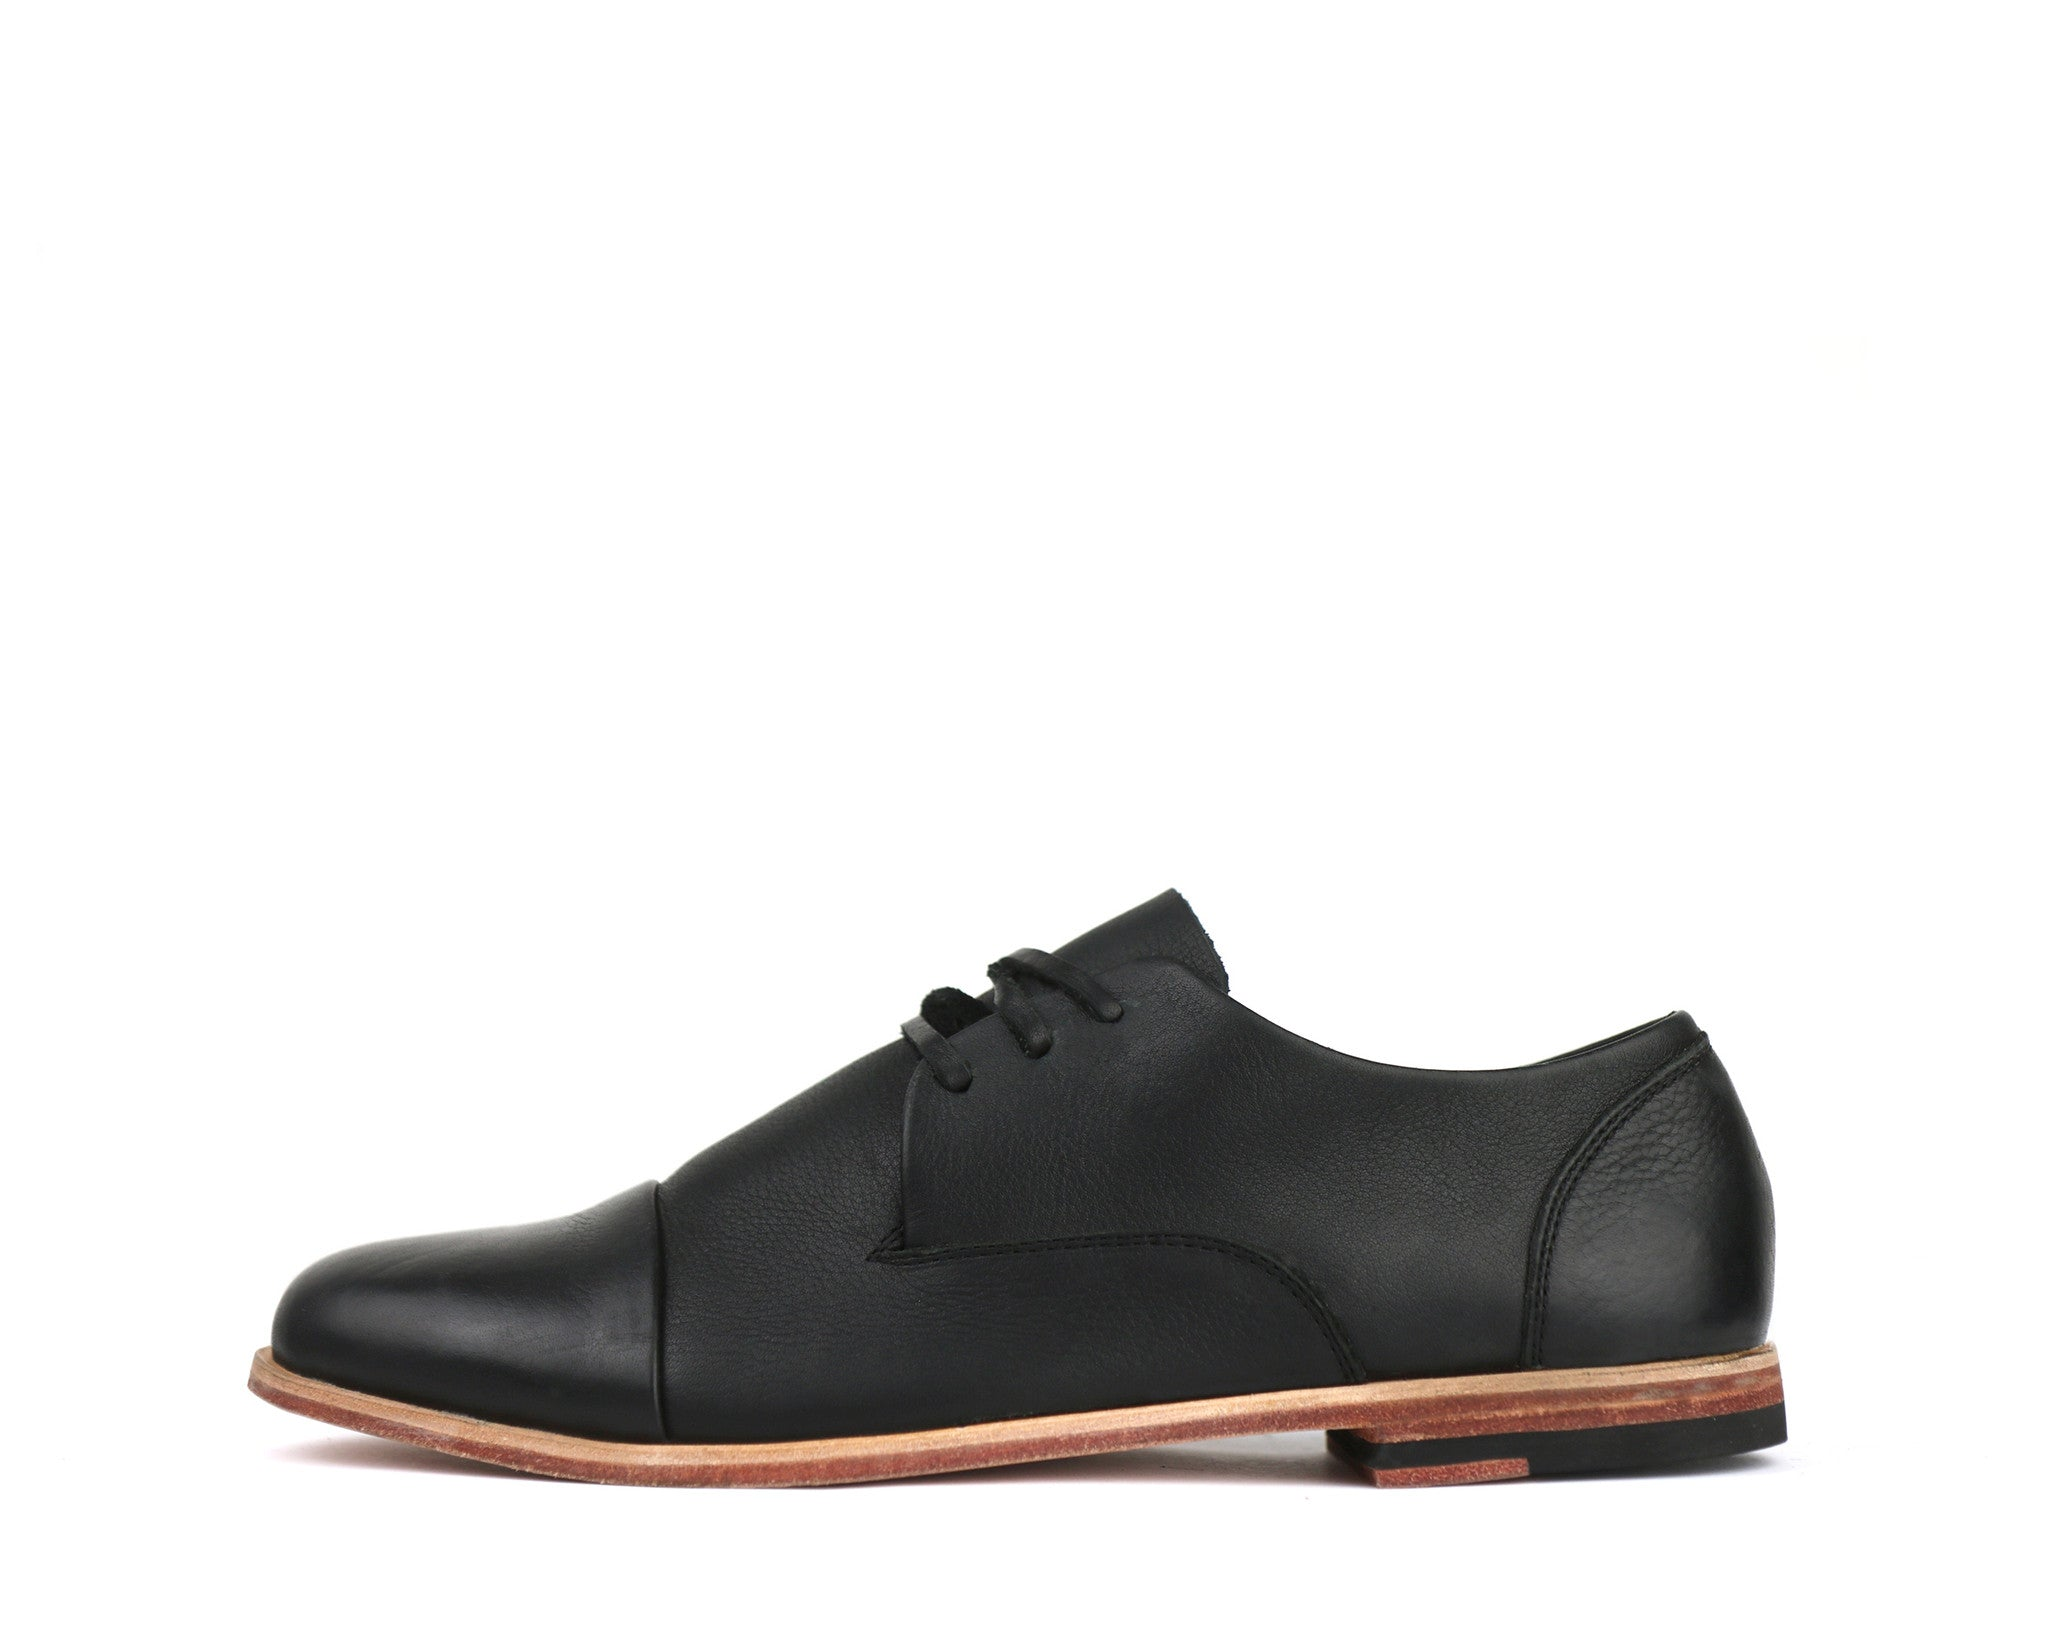 Men's Footwear: Heathen - Black - Leather Sole | Mere